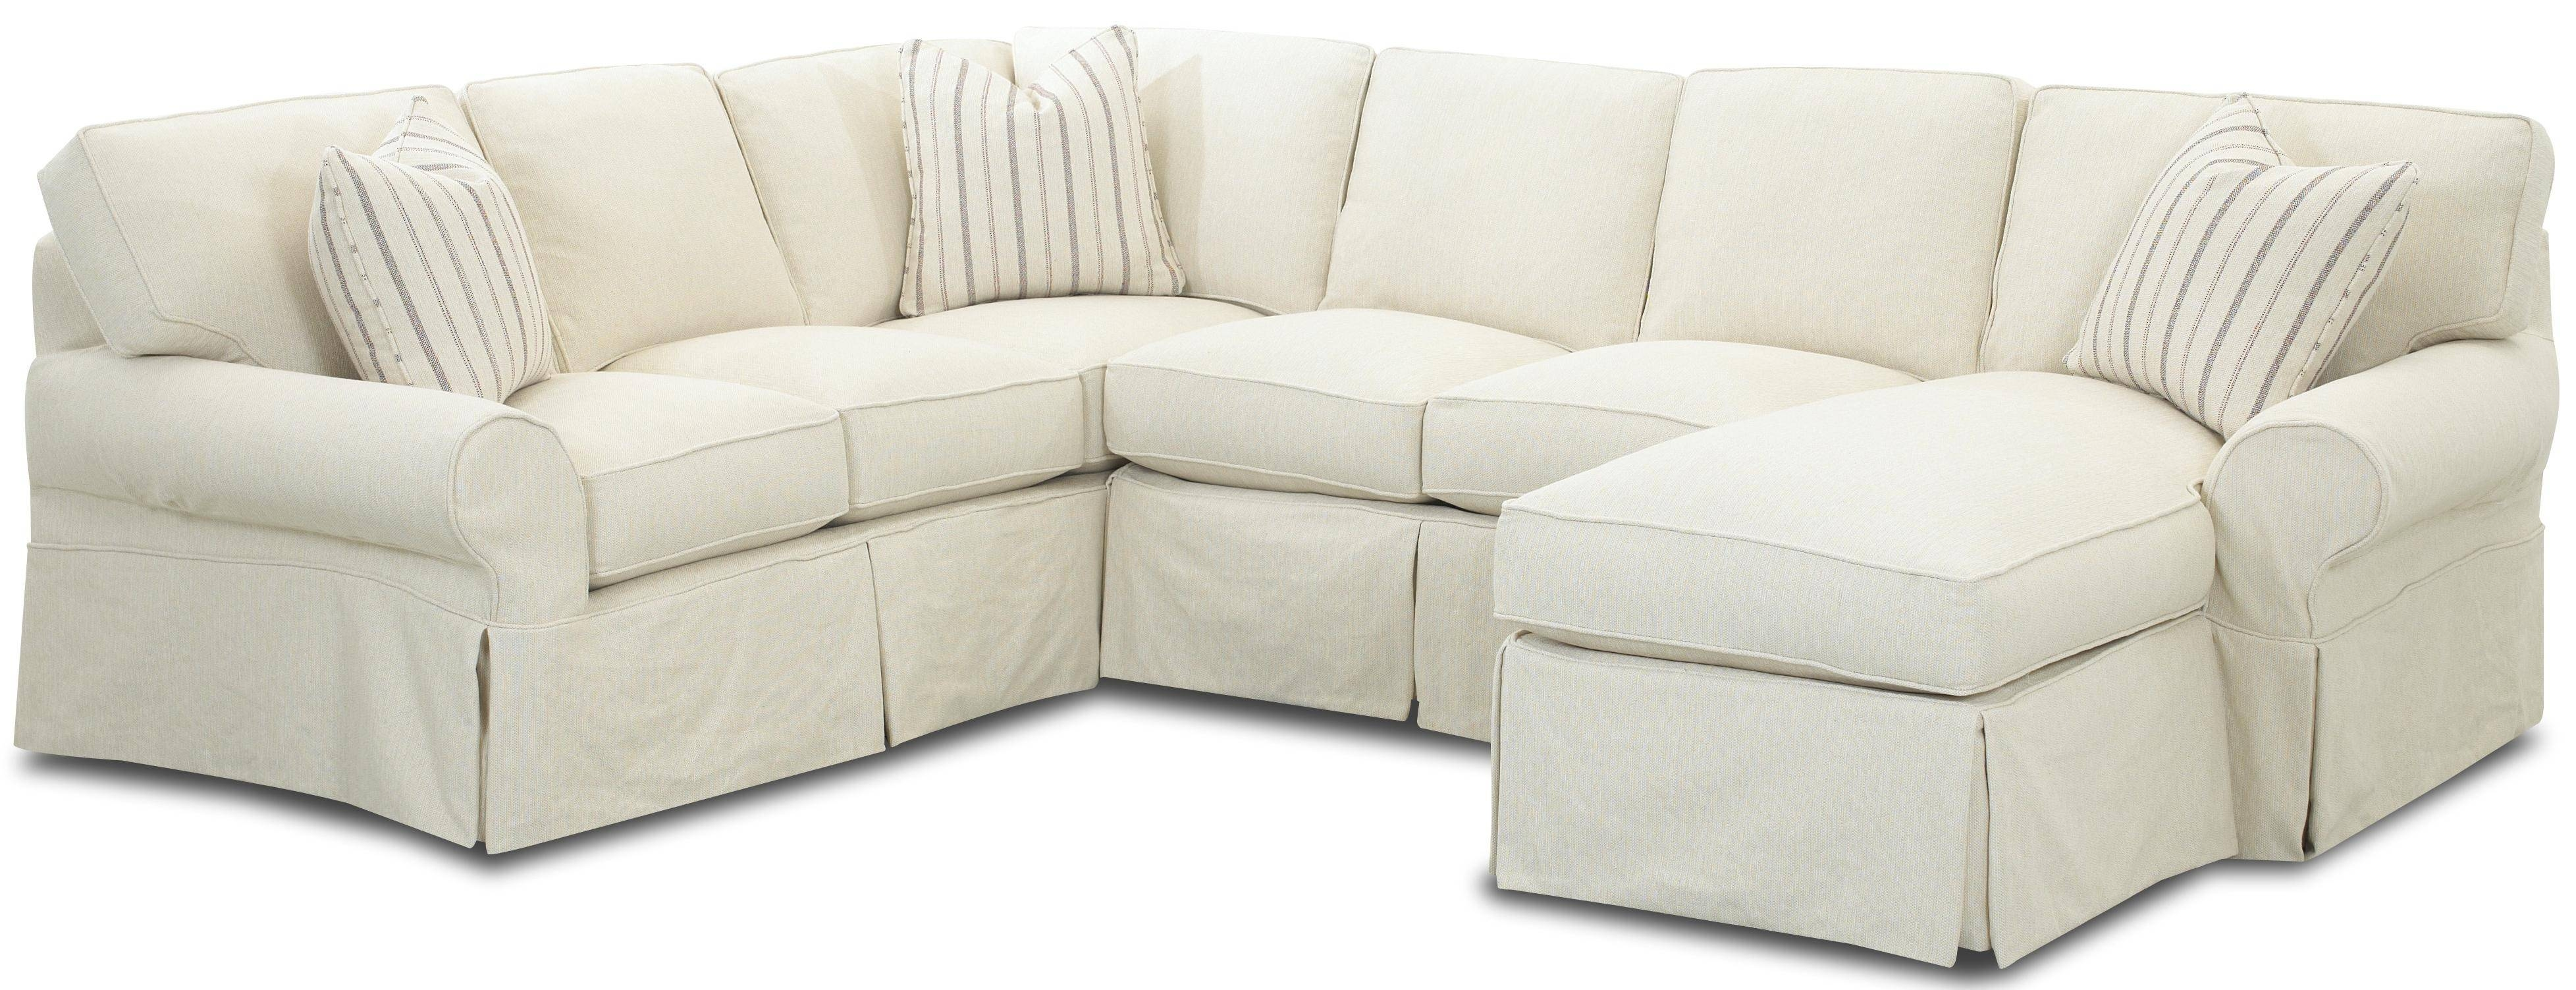 Inspirations: Interesting Furniture Sectional Sofa Slipcovers For intended for Sectional Sofa Covers (Image 11 of 25)